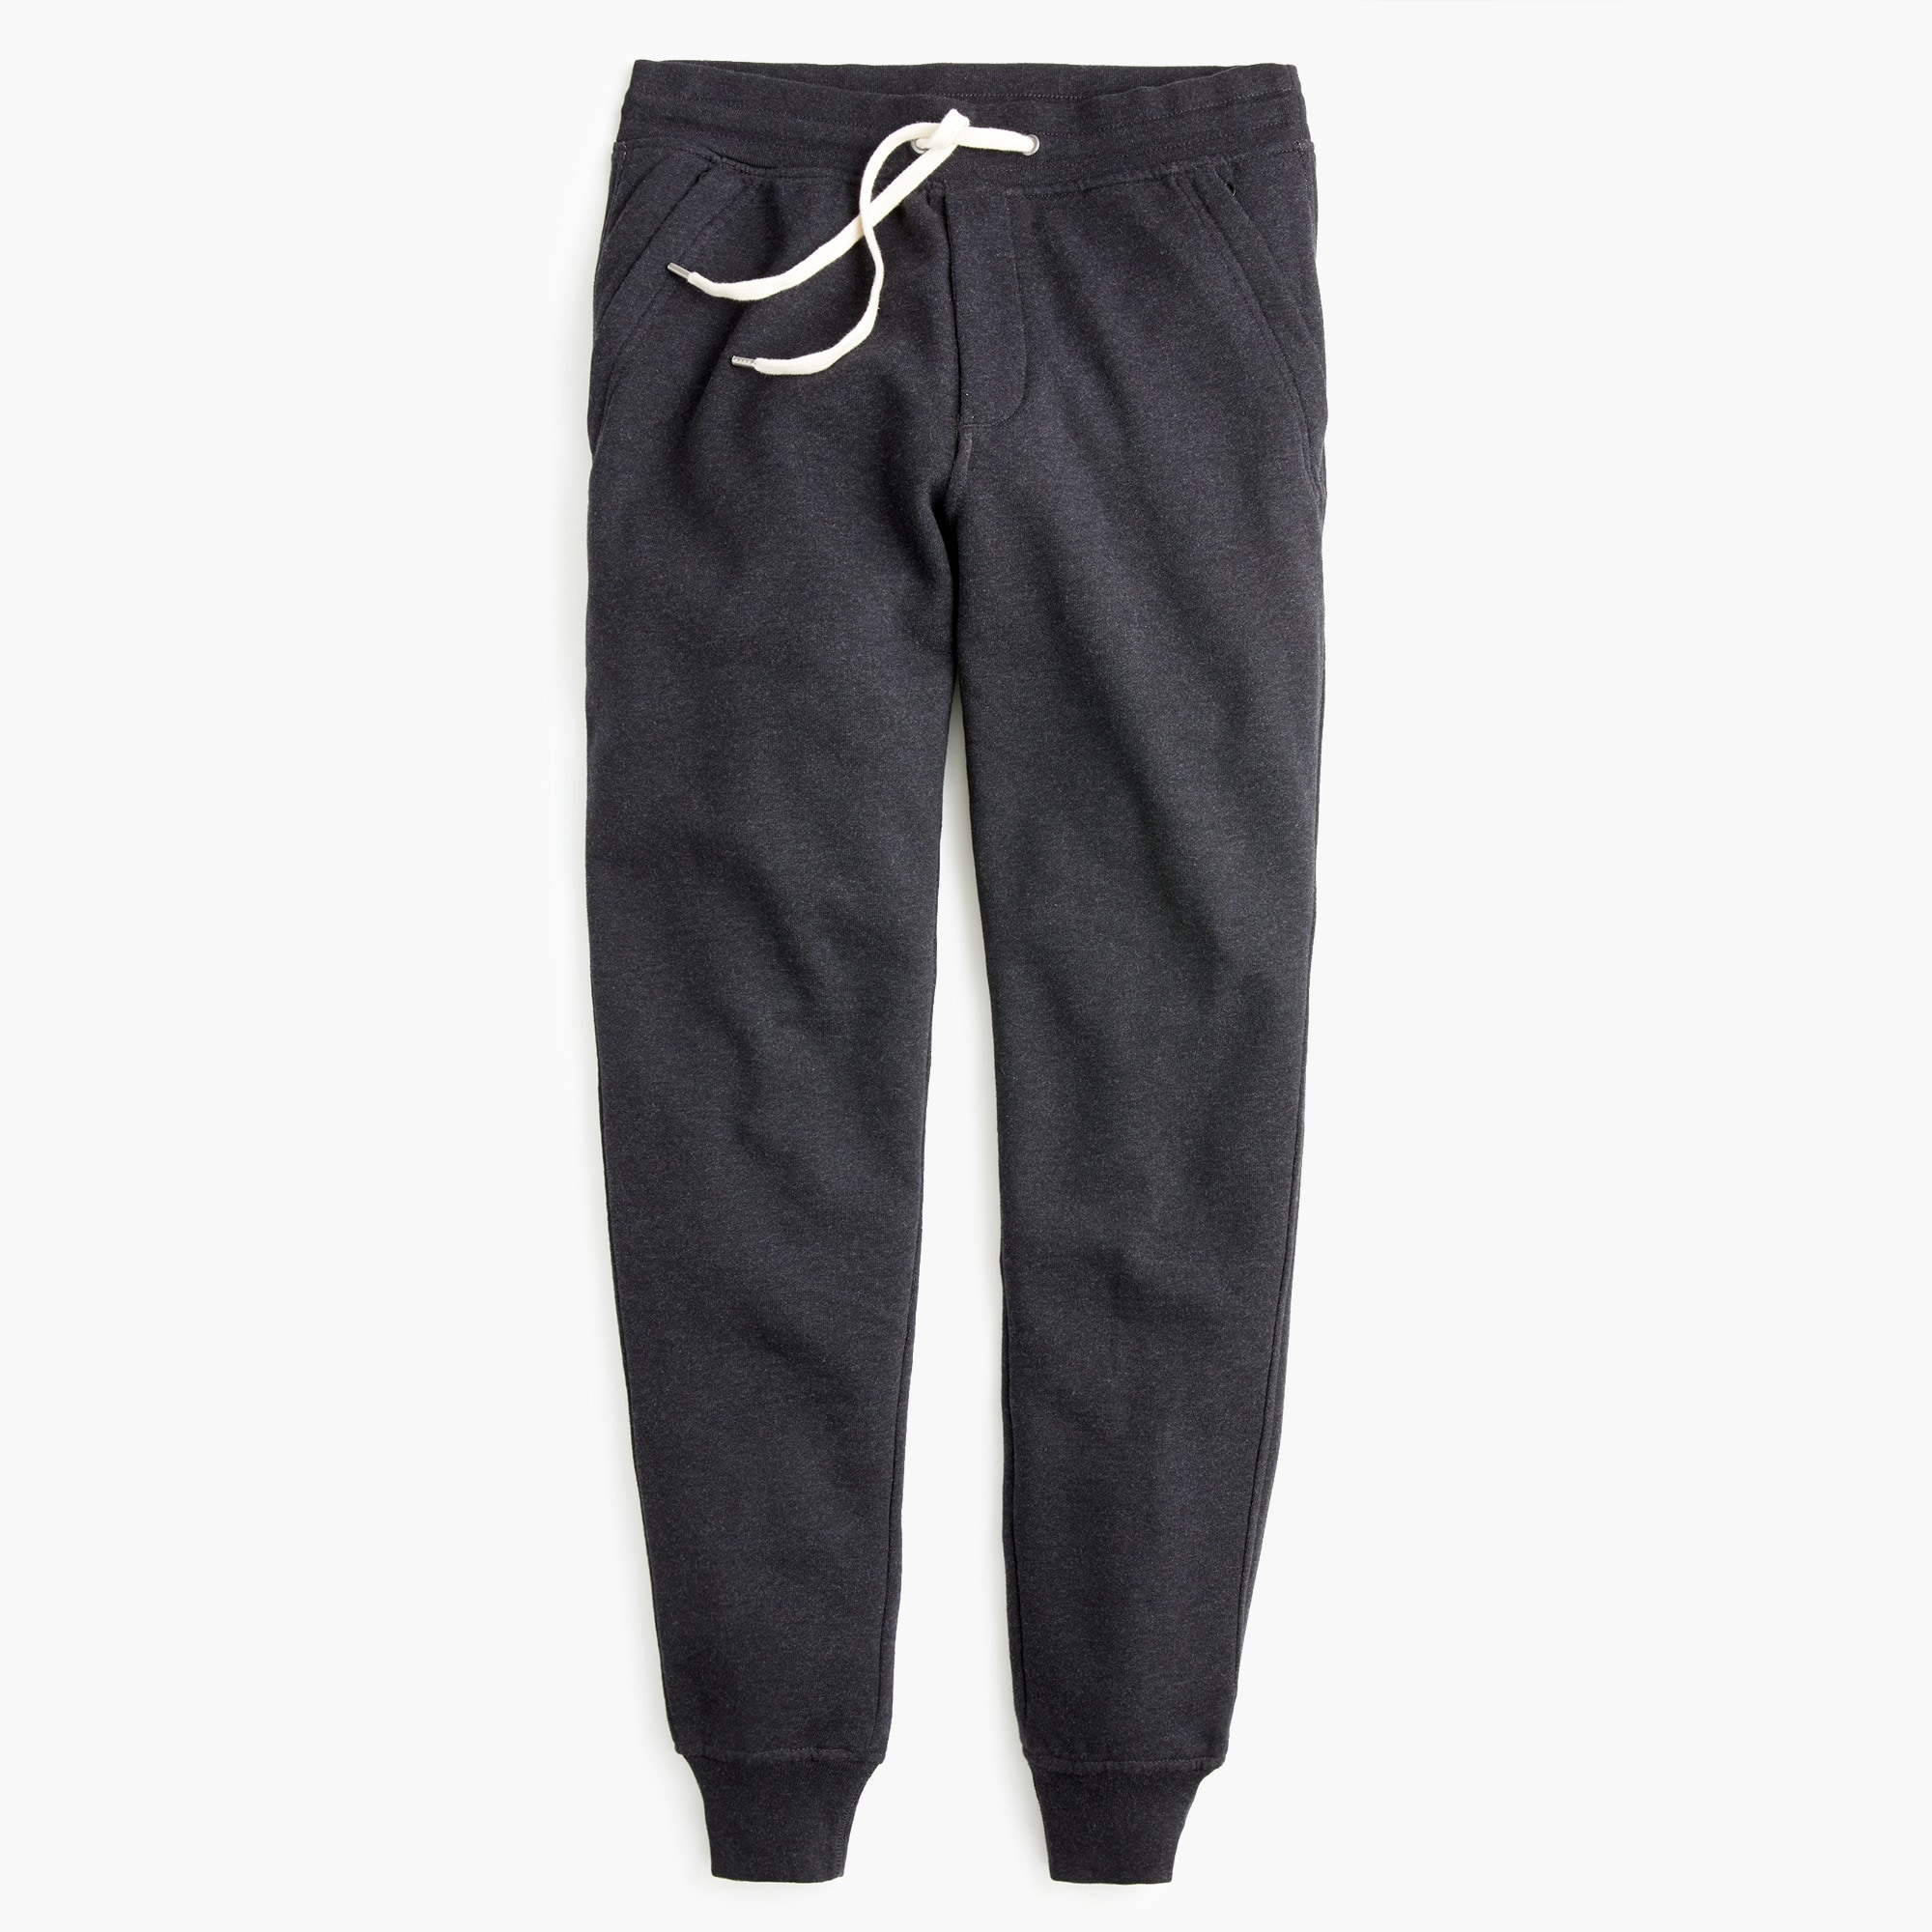 men's slim brushed fleece sweatpant - men's knits